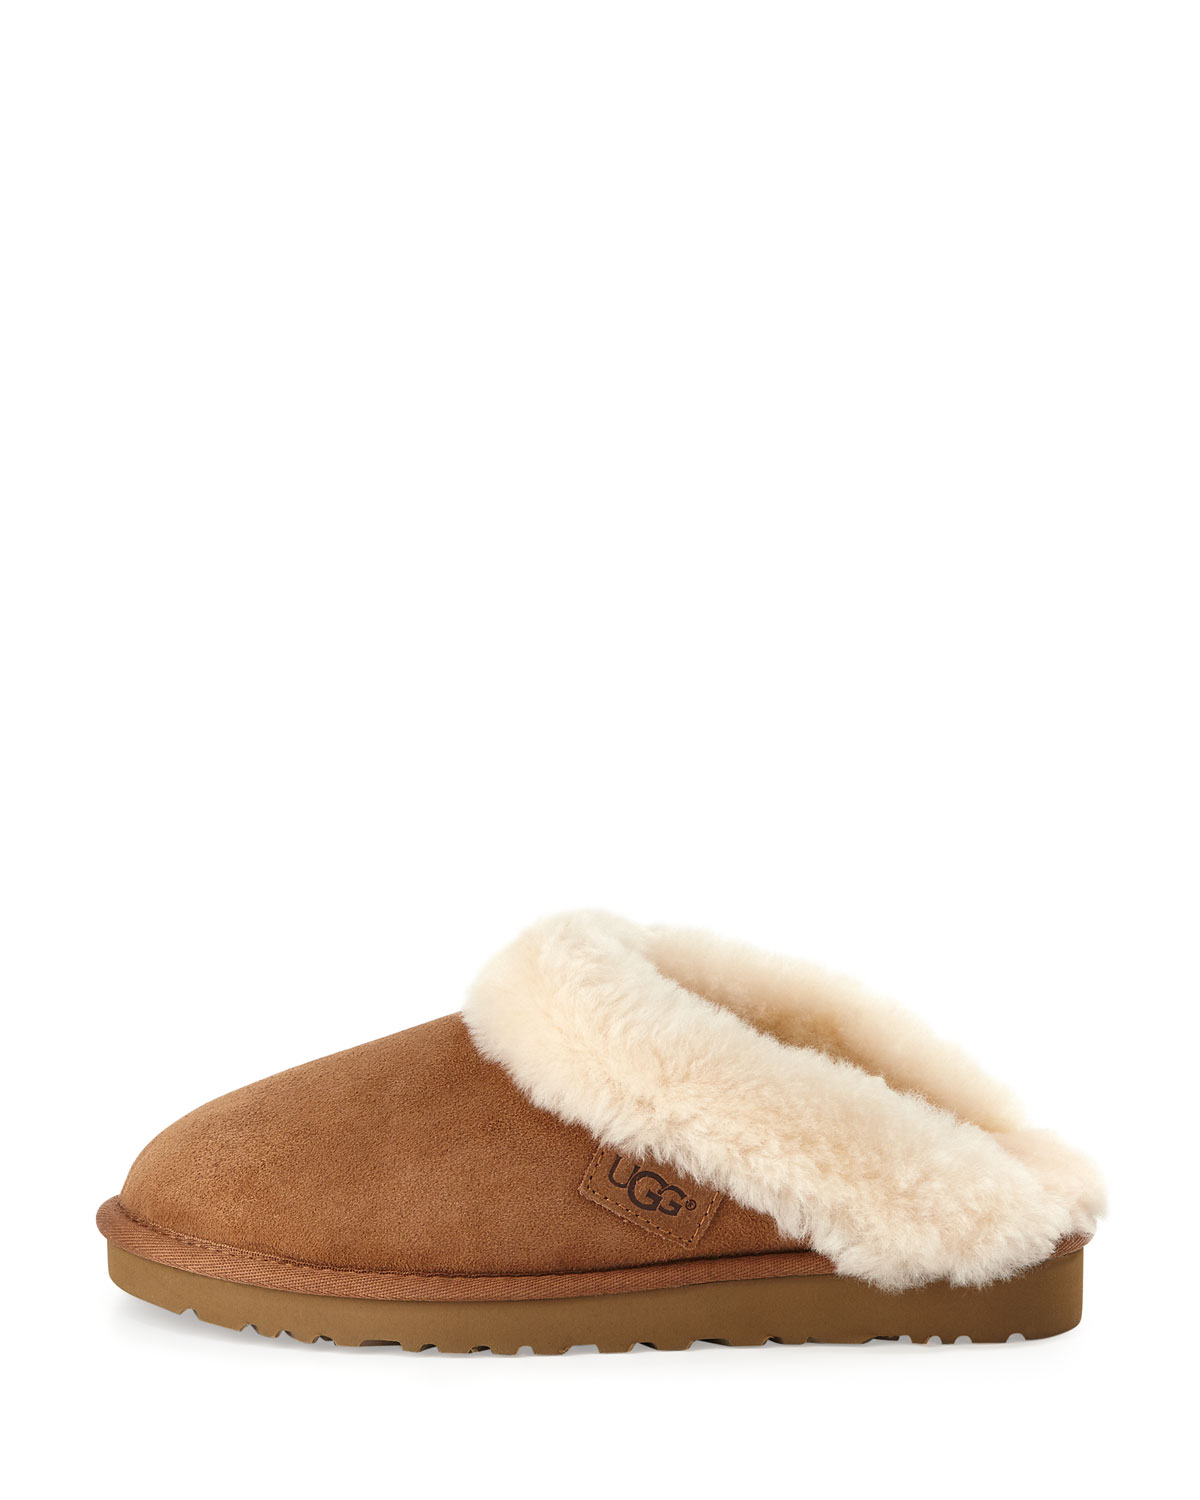 194bc577286 Cluggette Shearling Slide Slipper